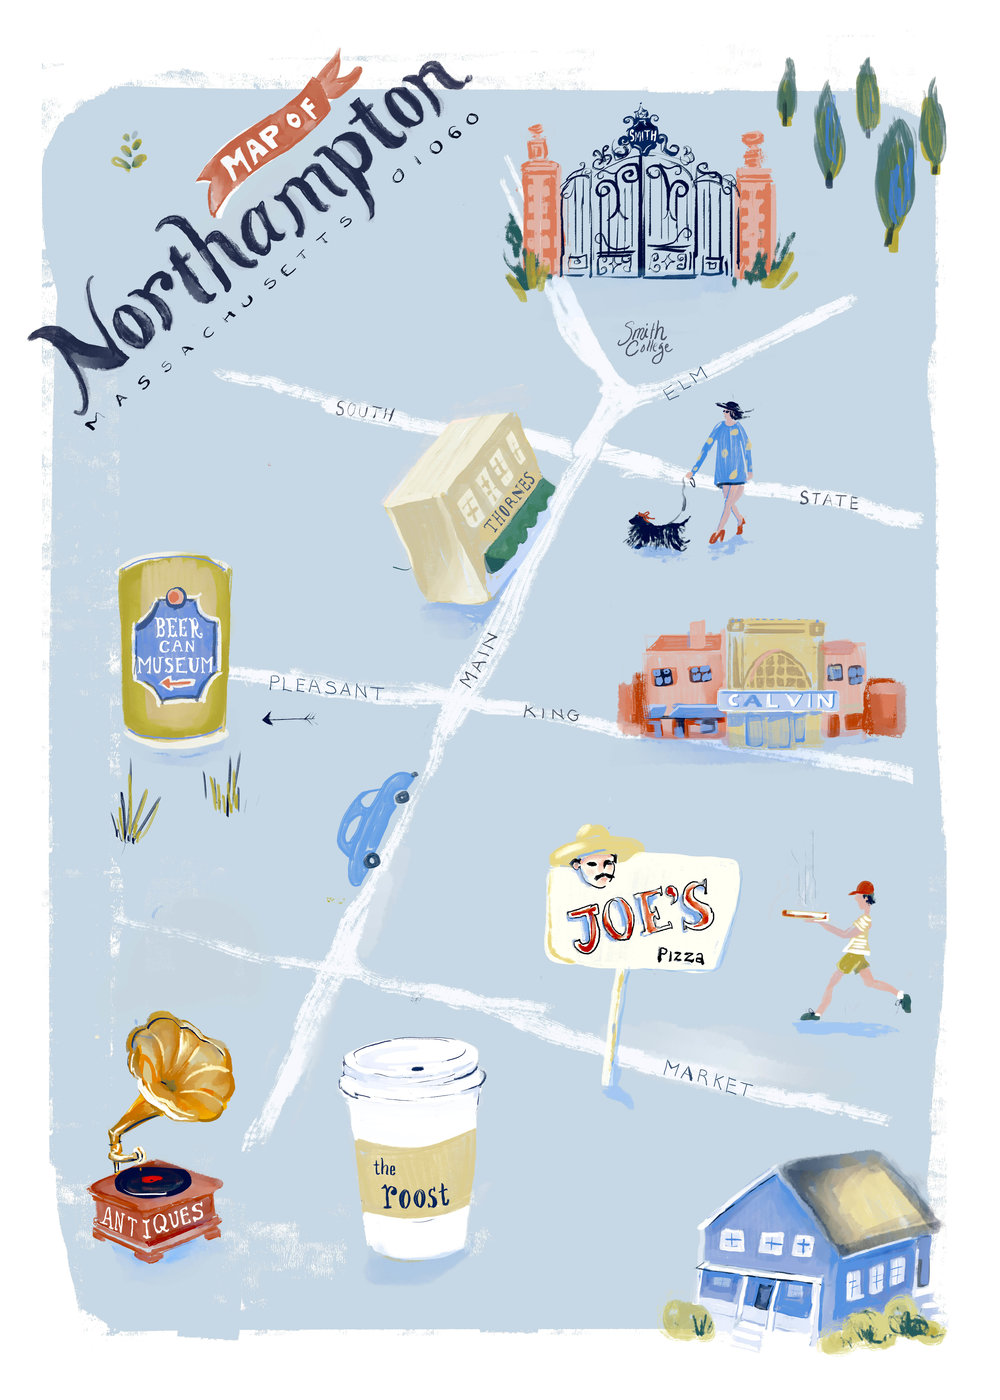 Illustrated map of Northampton, Massachusetts